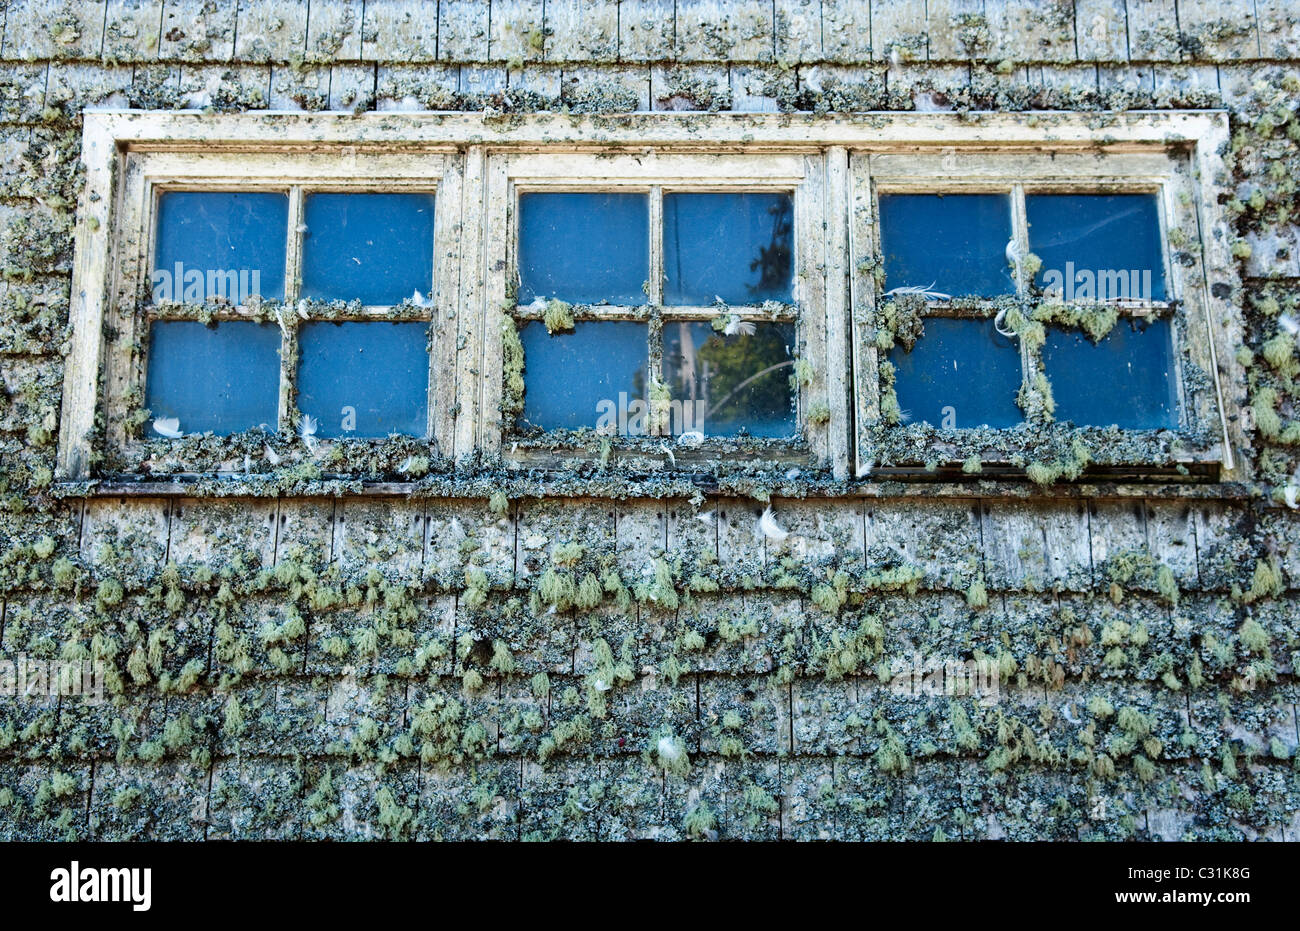 A set of windows layered by the elements in Acadia National Park, Maine. - Stock Image